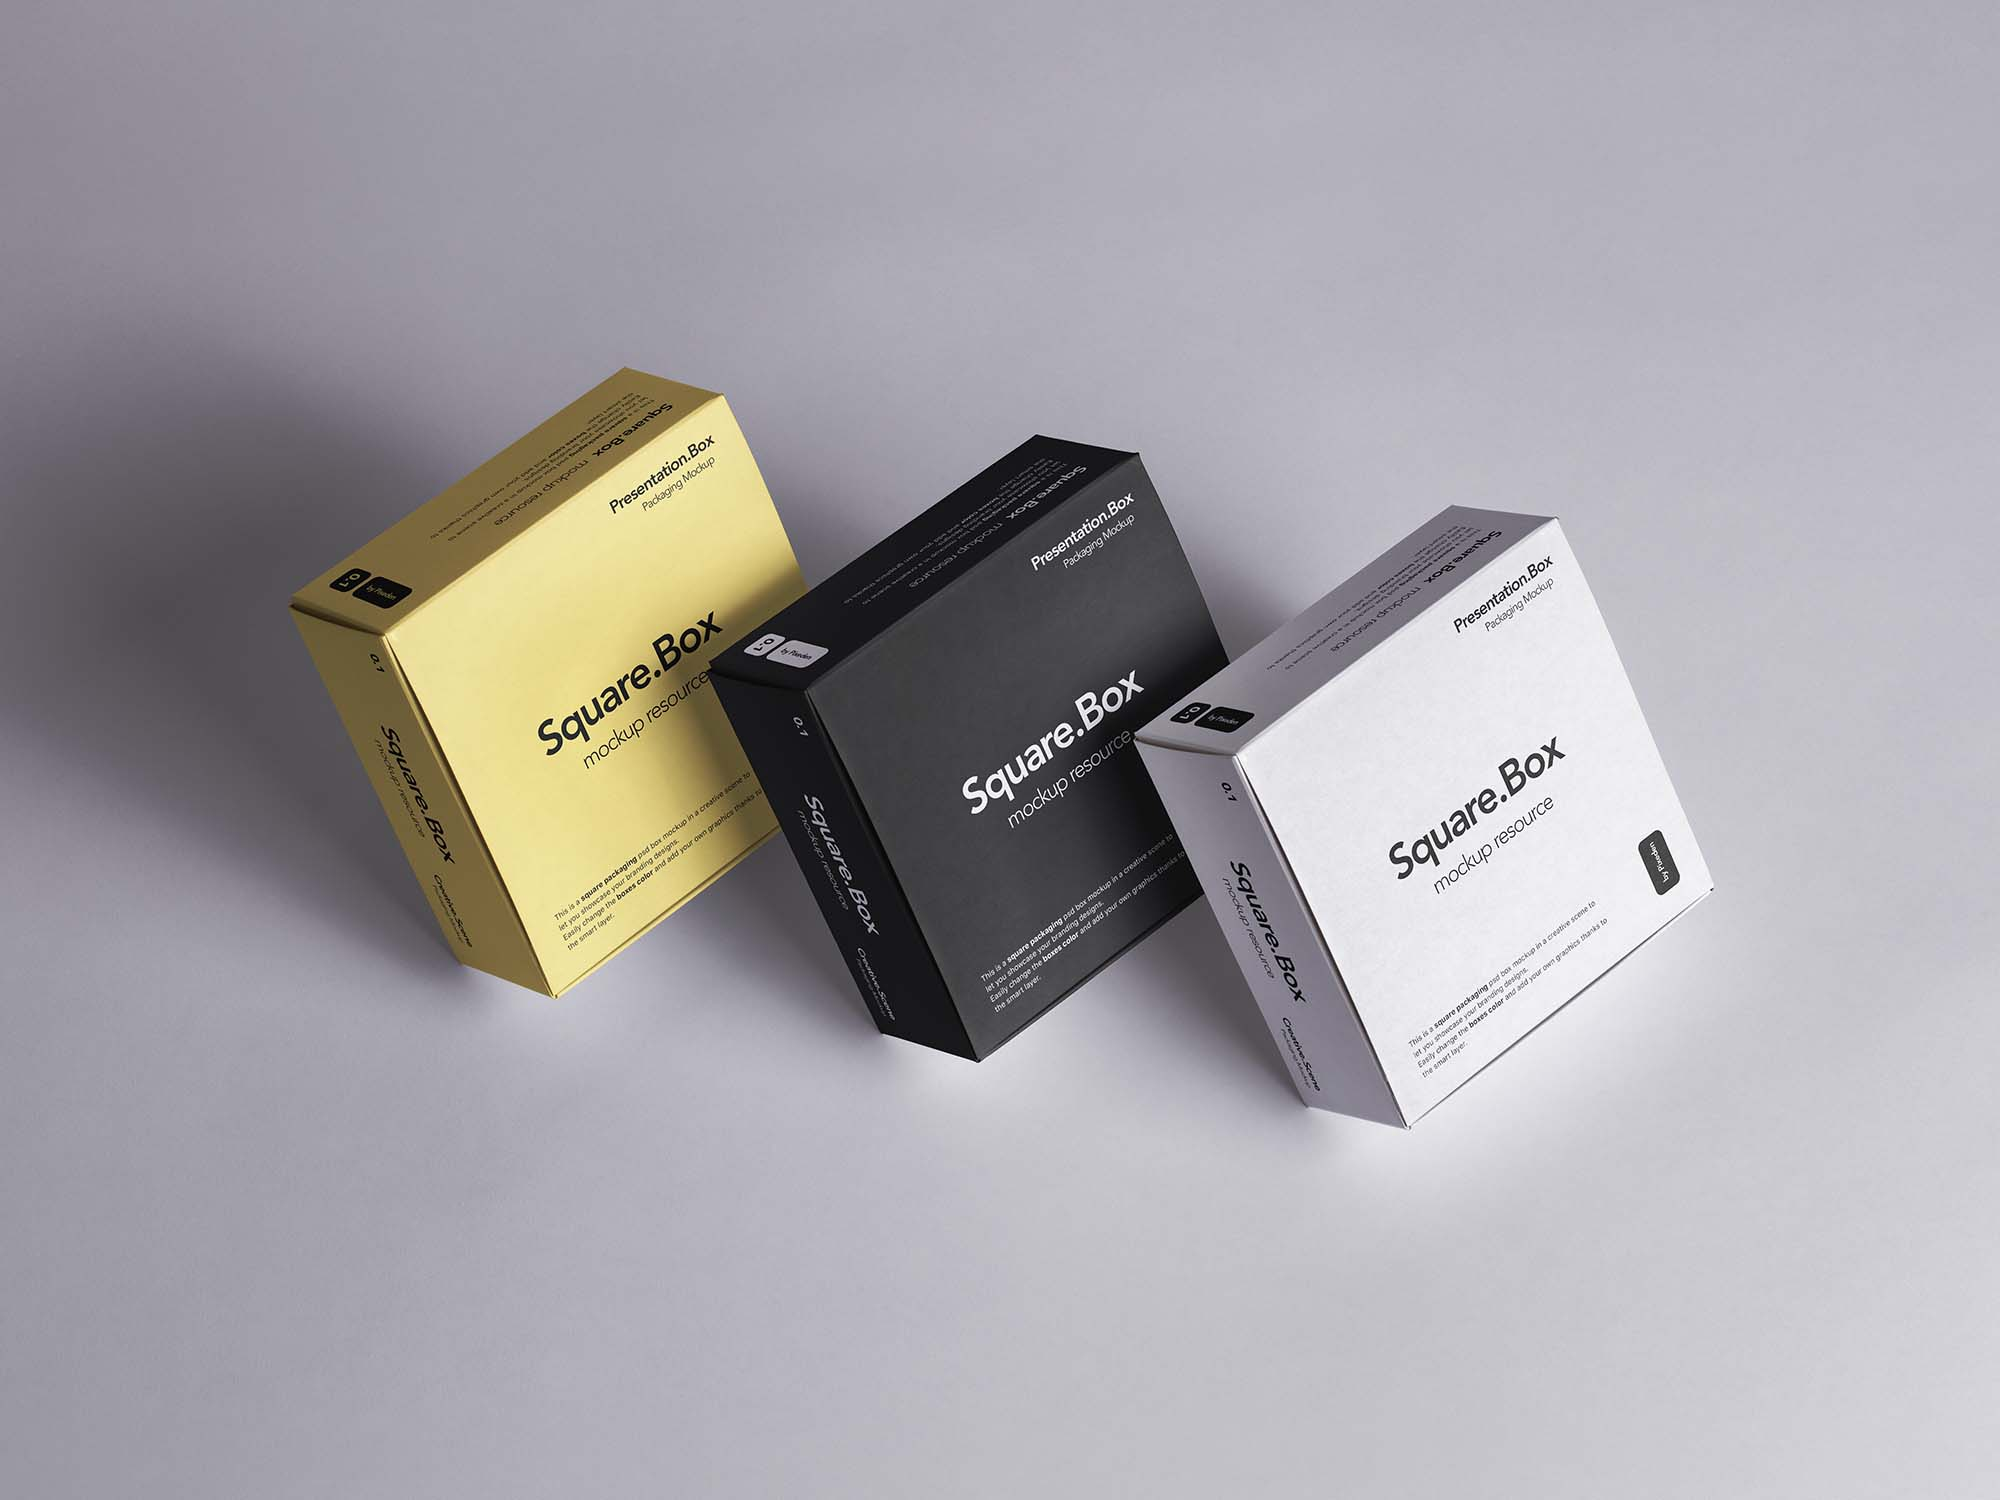 Square Box Package Mockup